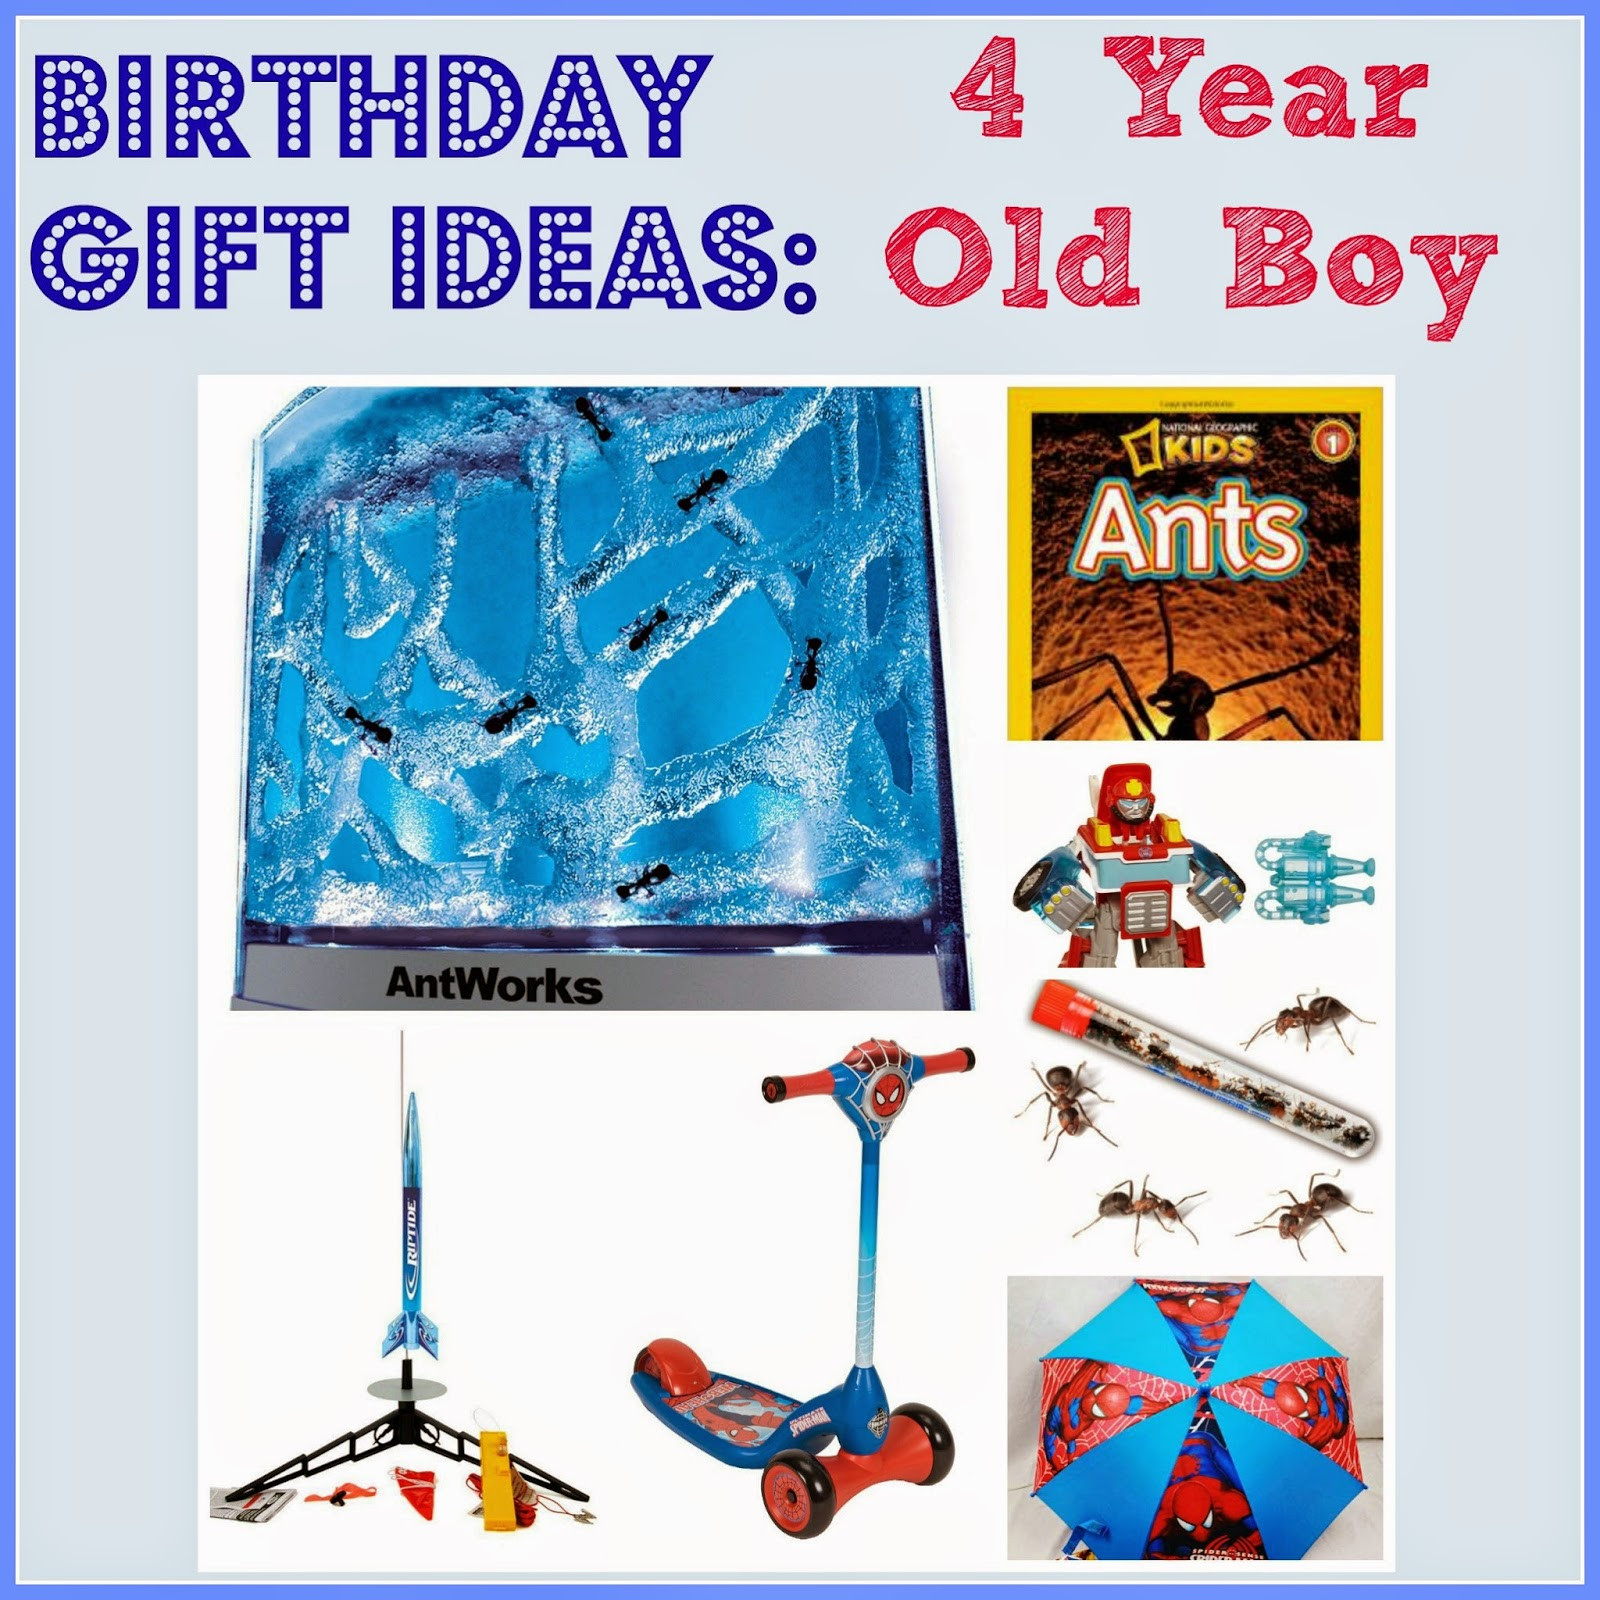 20 Of The Best Ideas For 8 Year Old Boy Birthday Gift